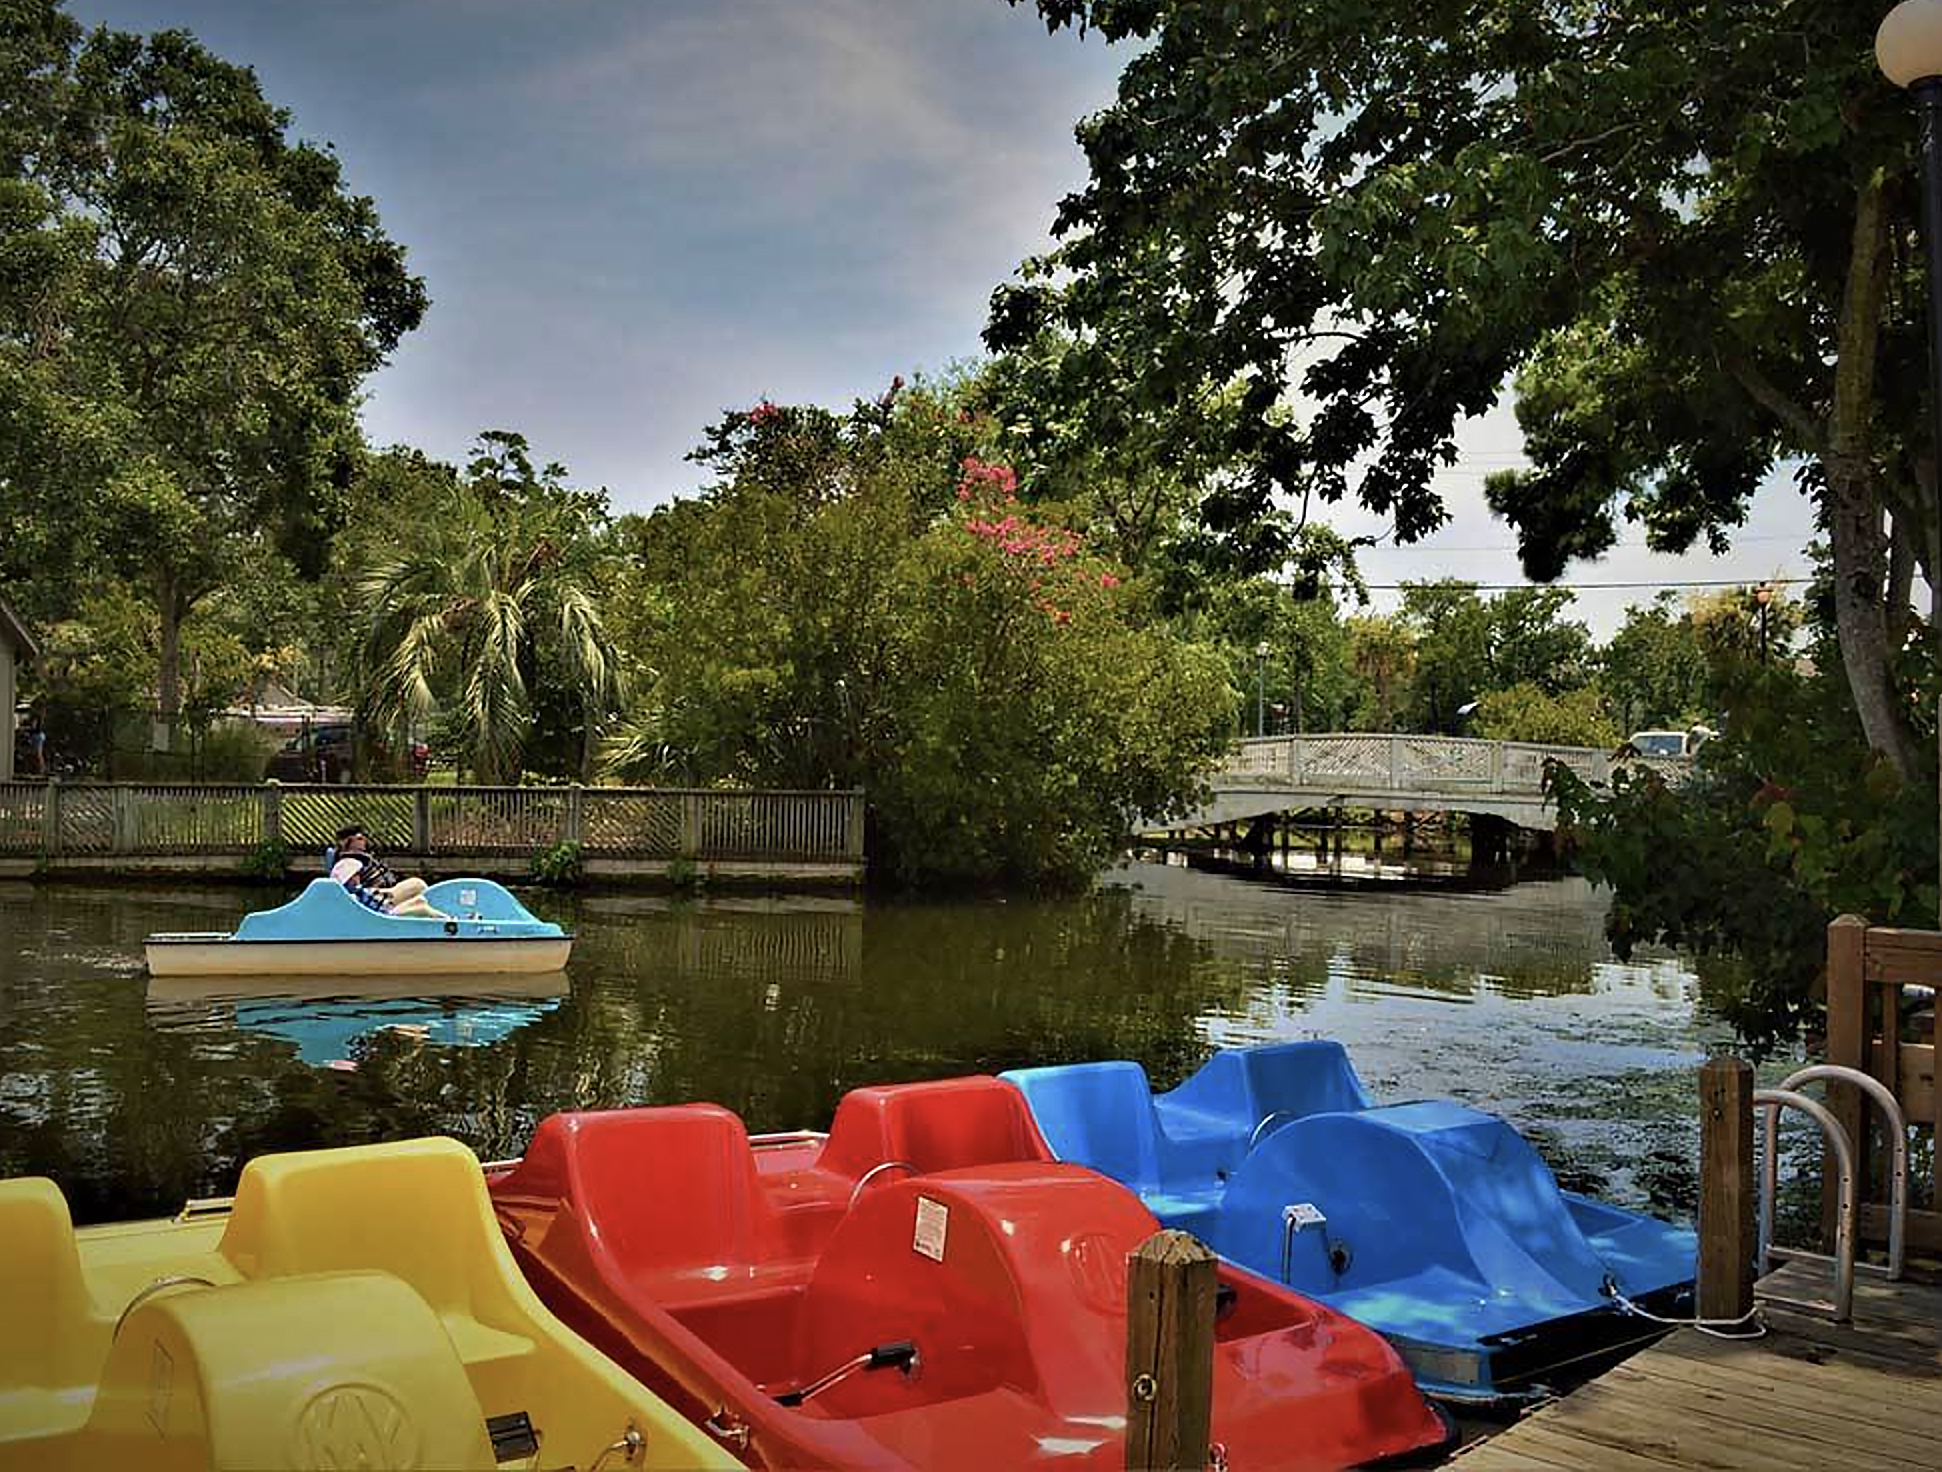 Woman pilots a pedal boat down a canal fringed with lush greenery.